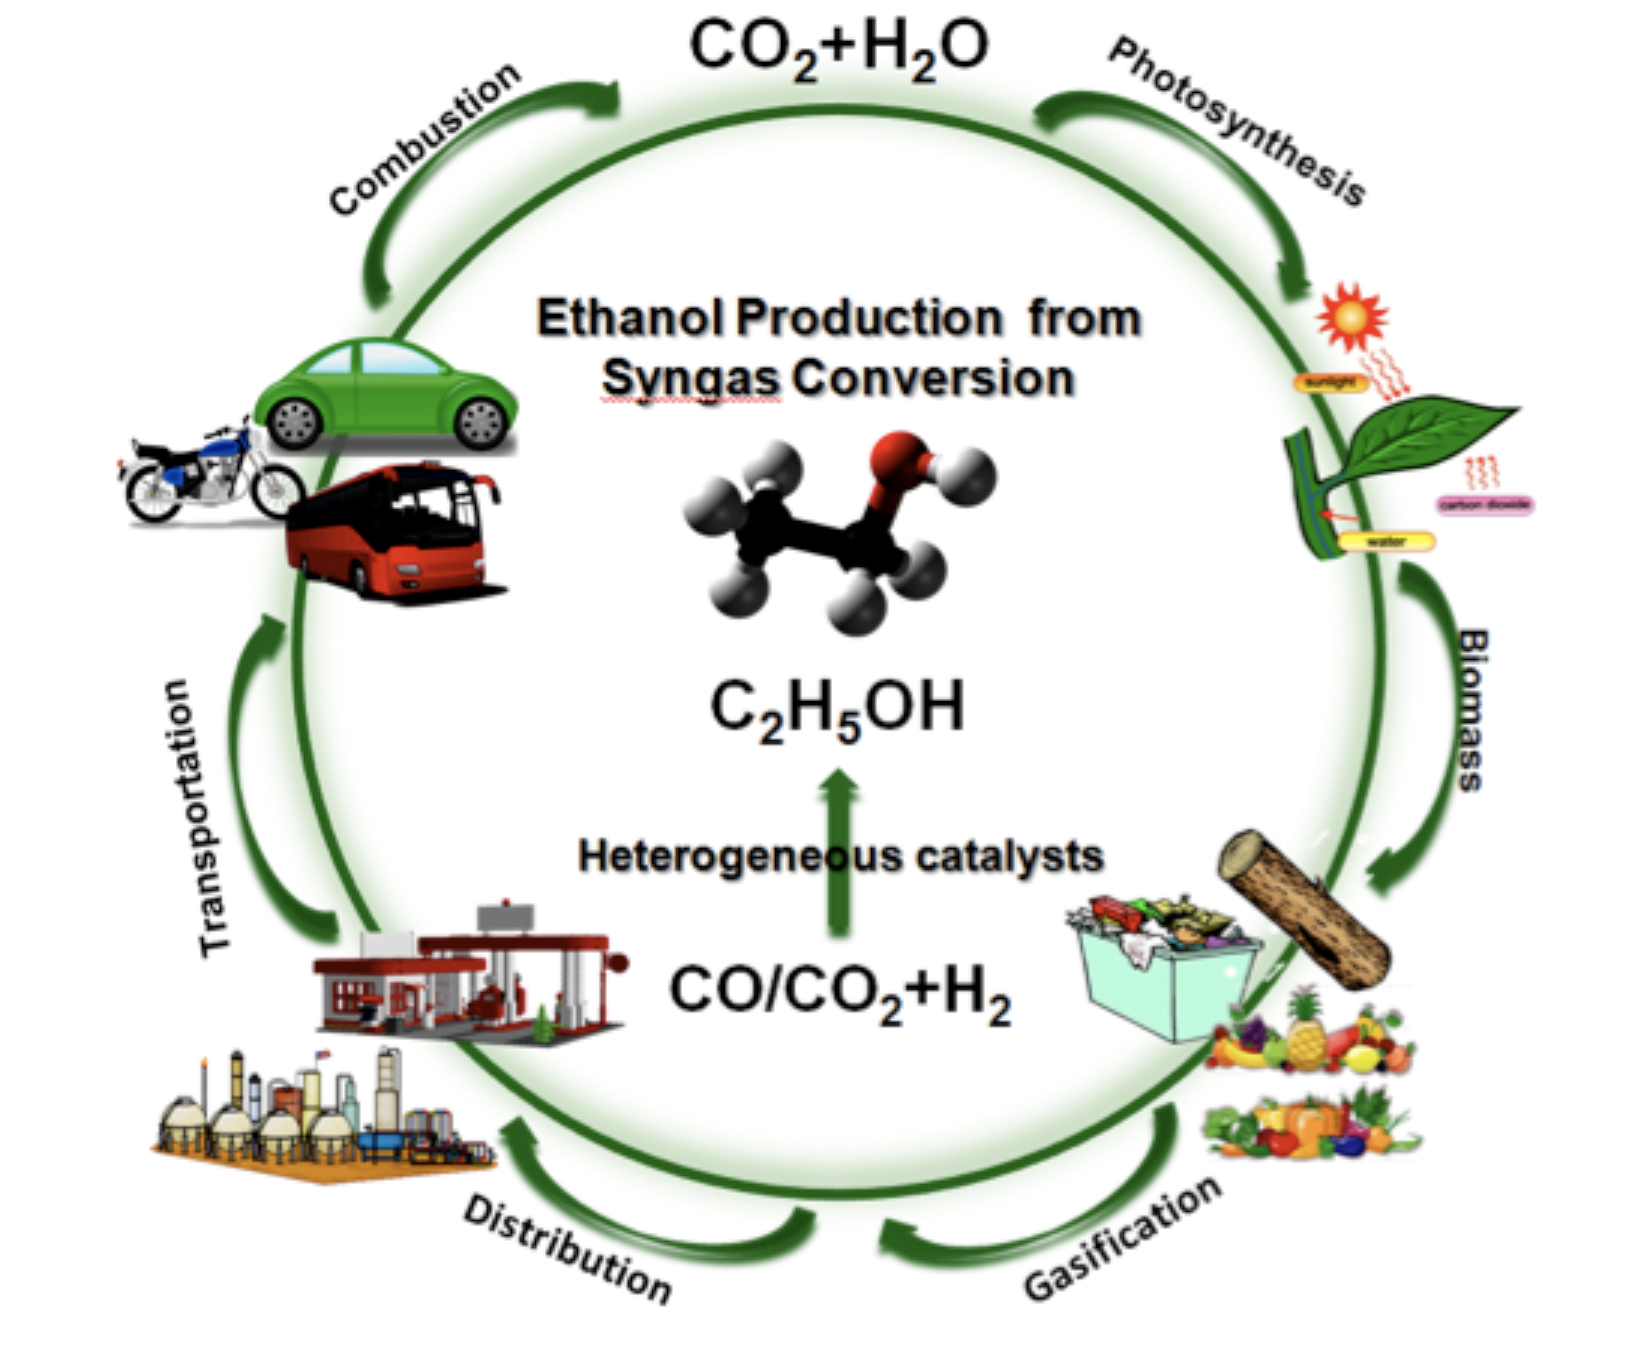 http://www.sustainablescientists.org/research-highlight-the-alchemy-behind-the-conversion-of-syngas-to-bioethanol/